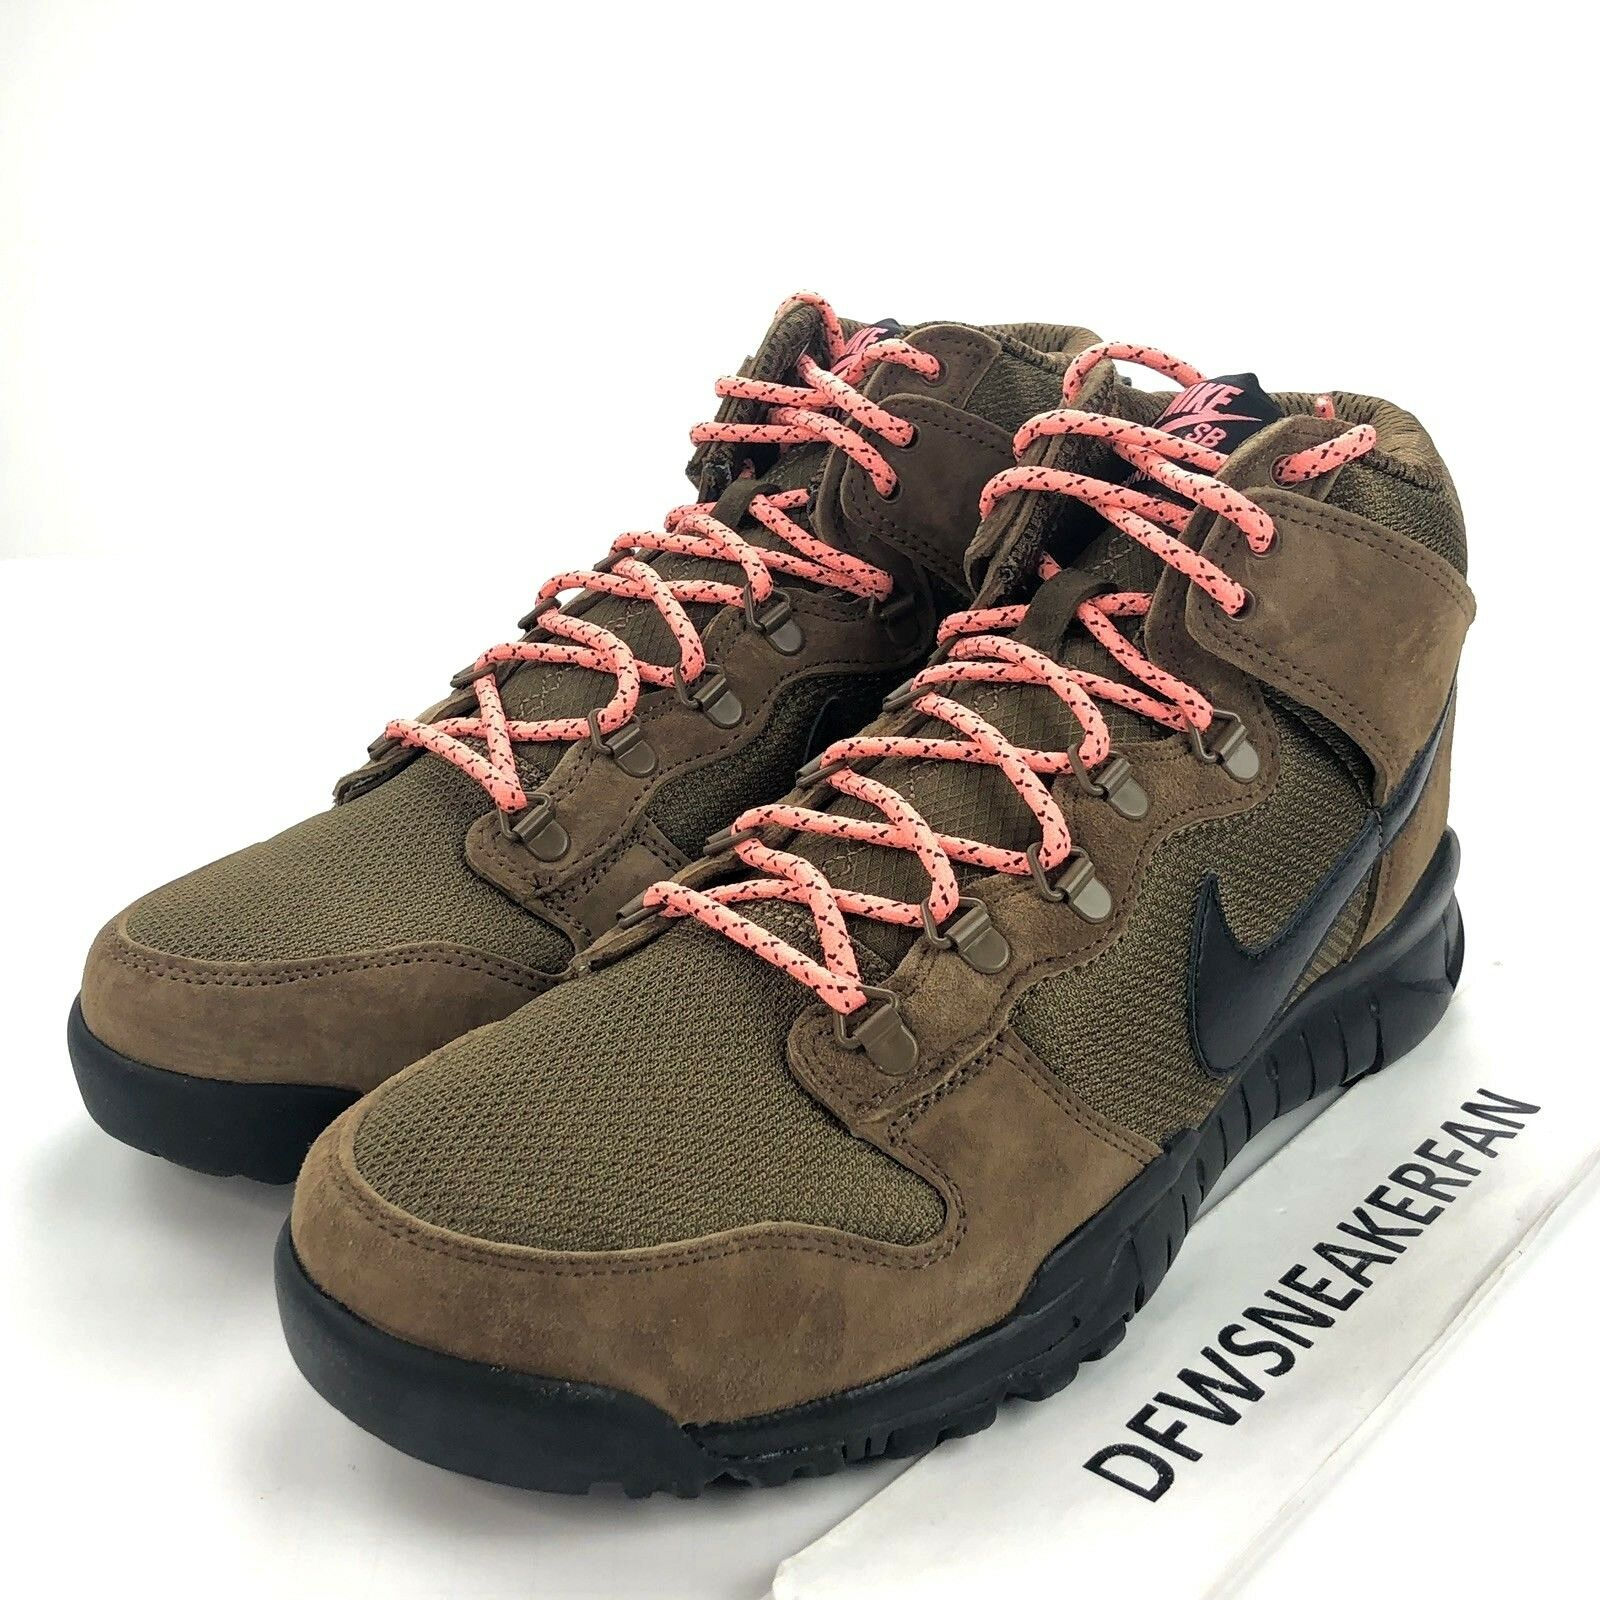 Nike SB Dunk High Boots Men's Size 9.5 Military Brown Black 536182-203 New